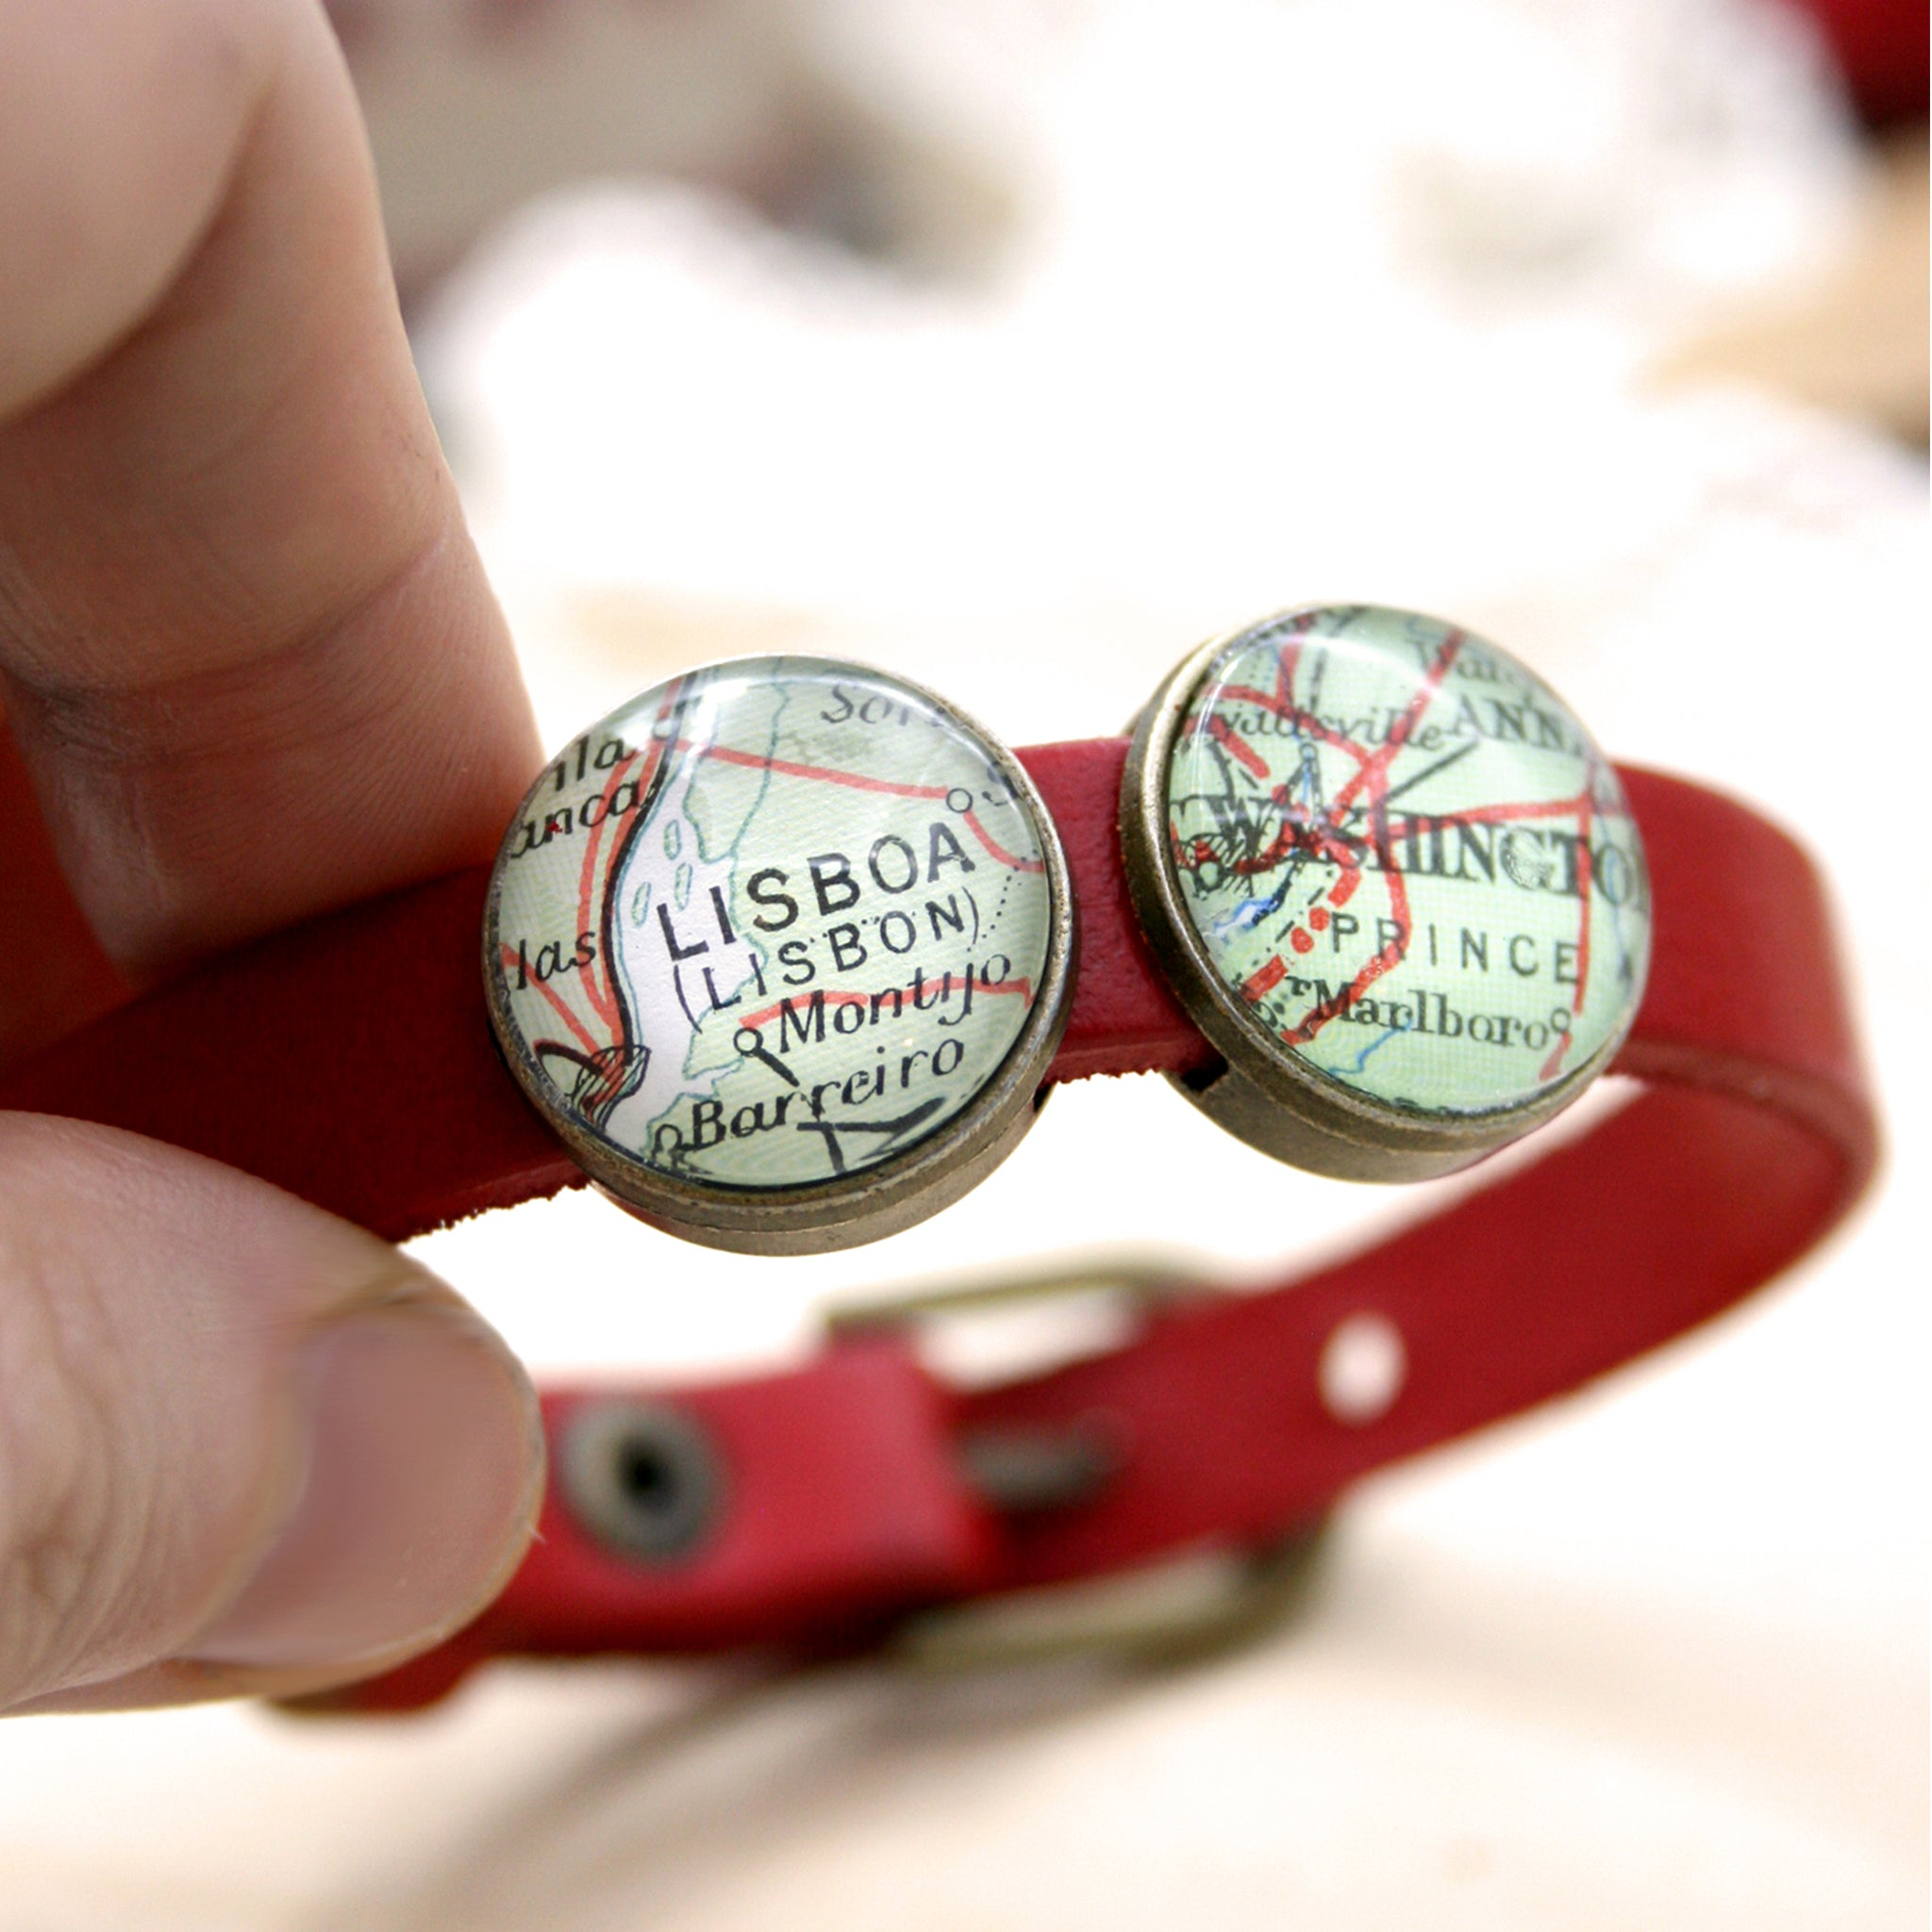 Hold in hand red leather bracelet featuring map locations